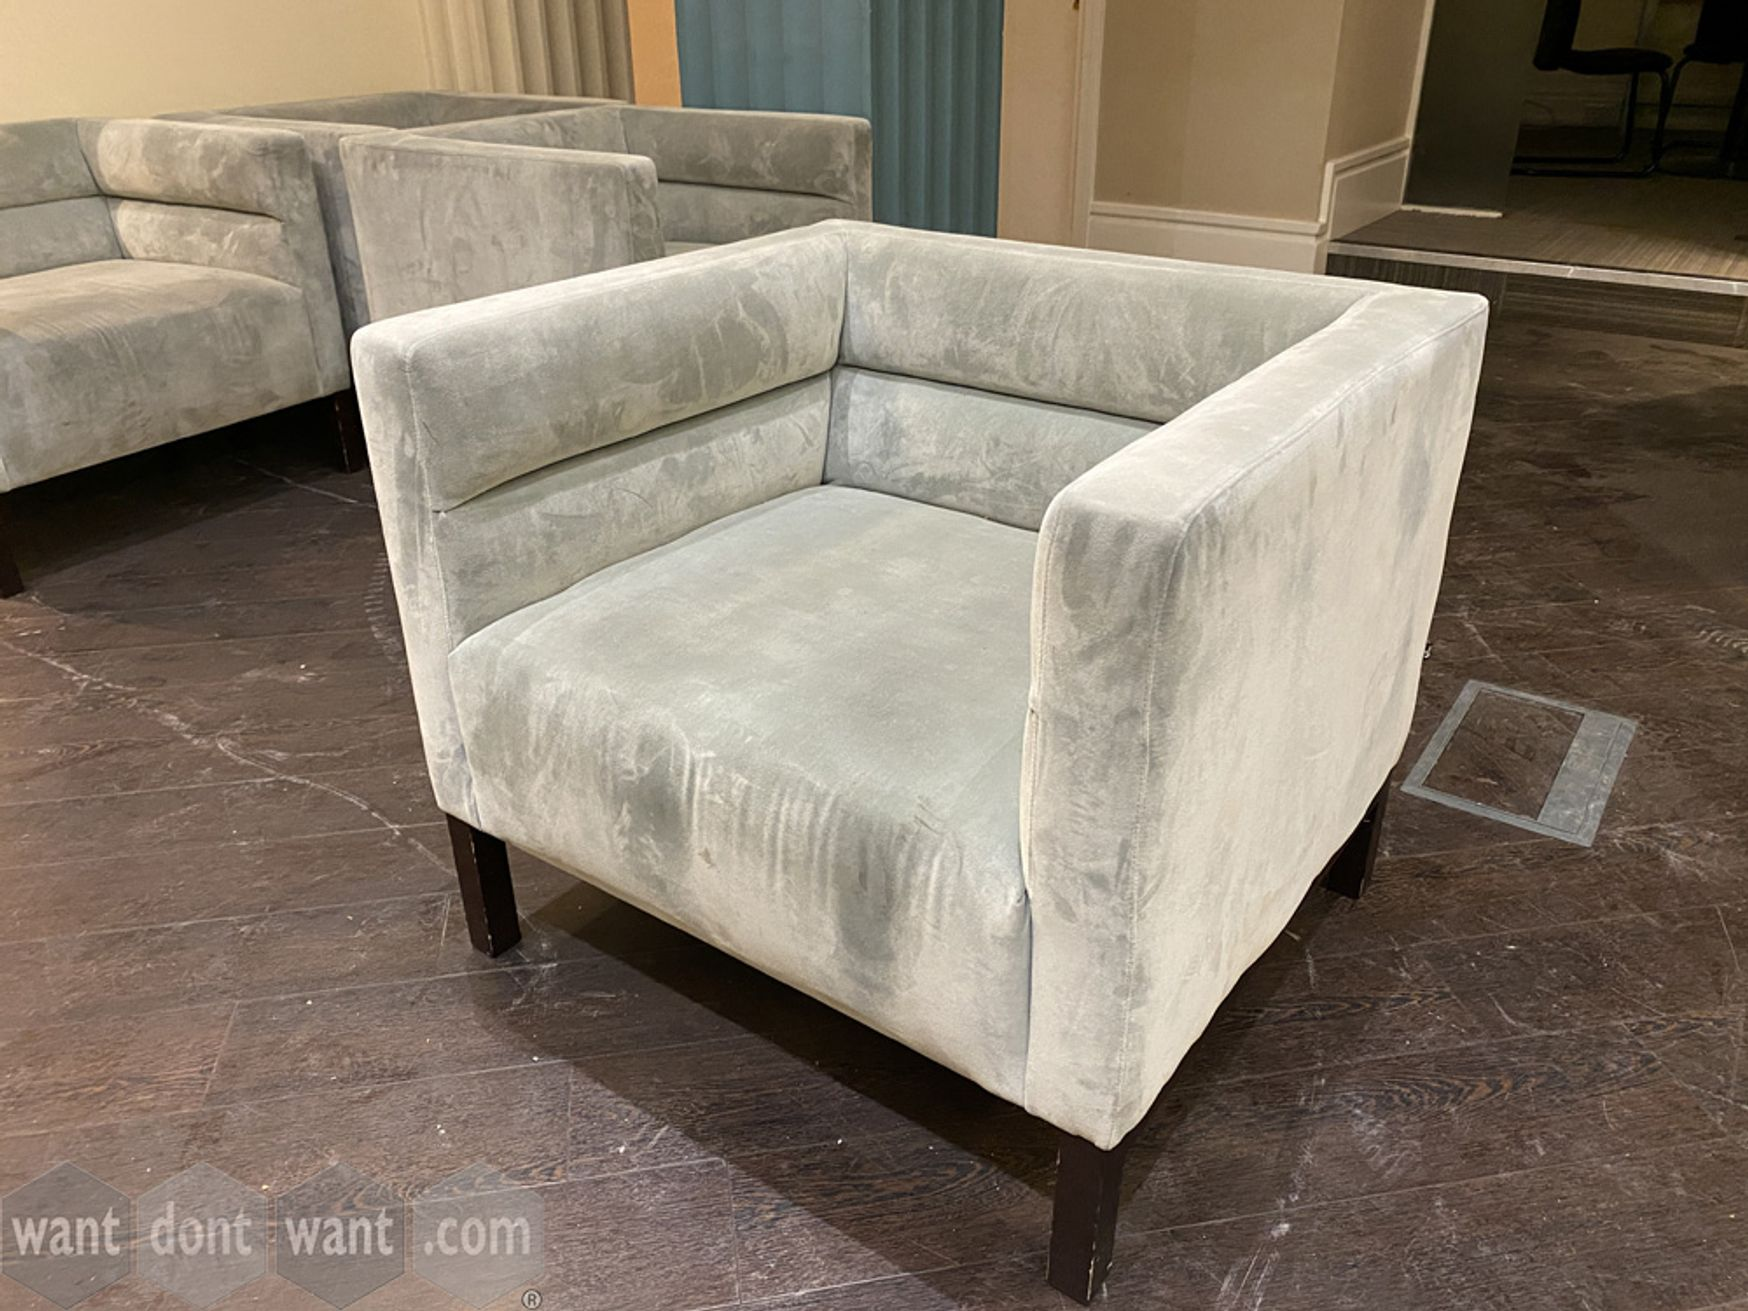 Used contemporary armchairs upholstered in silver suede-look fabric.